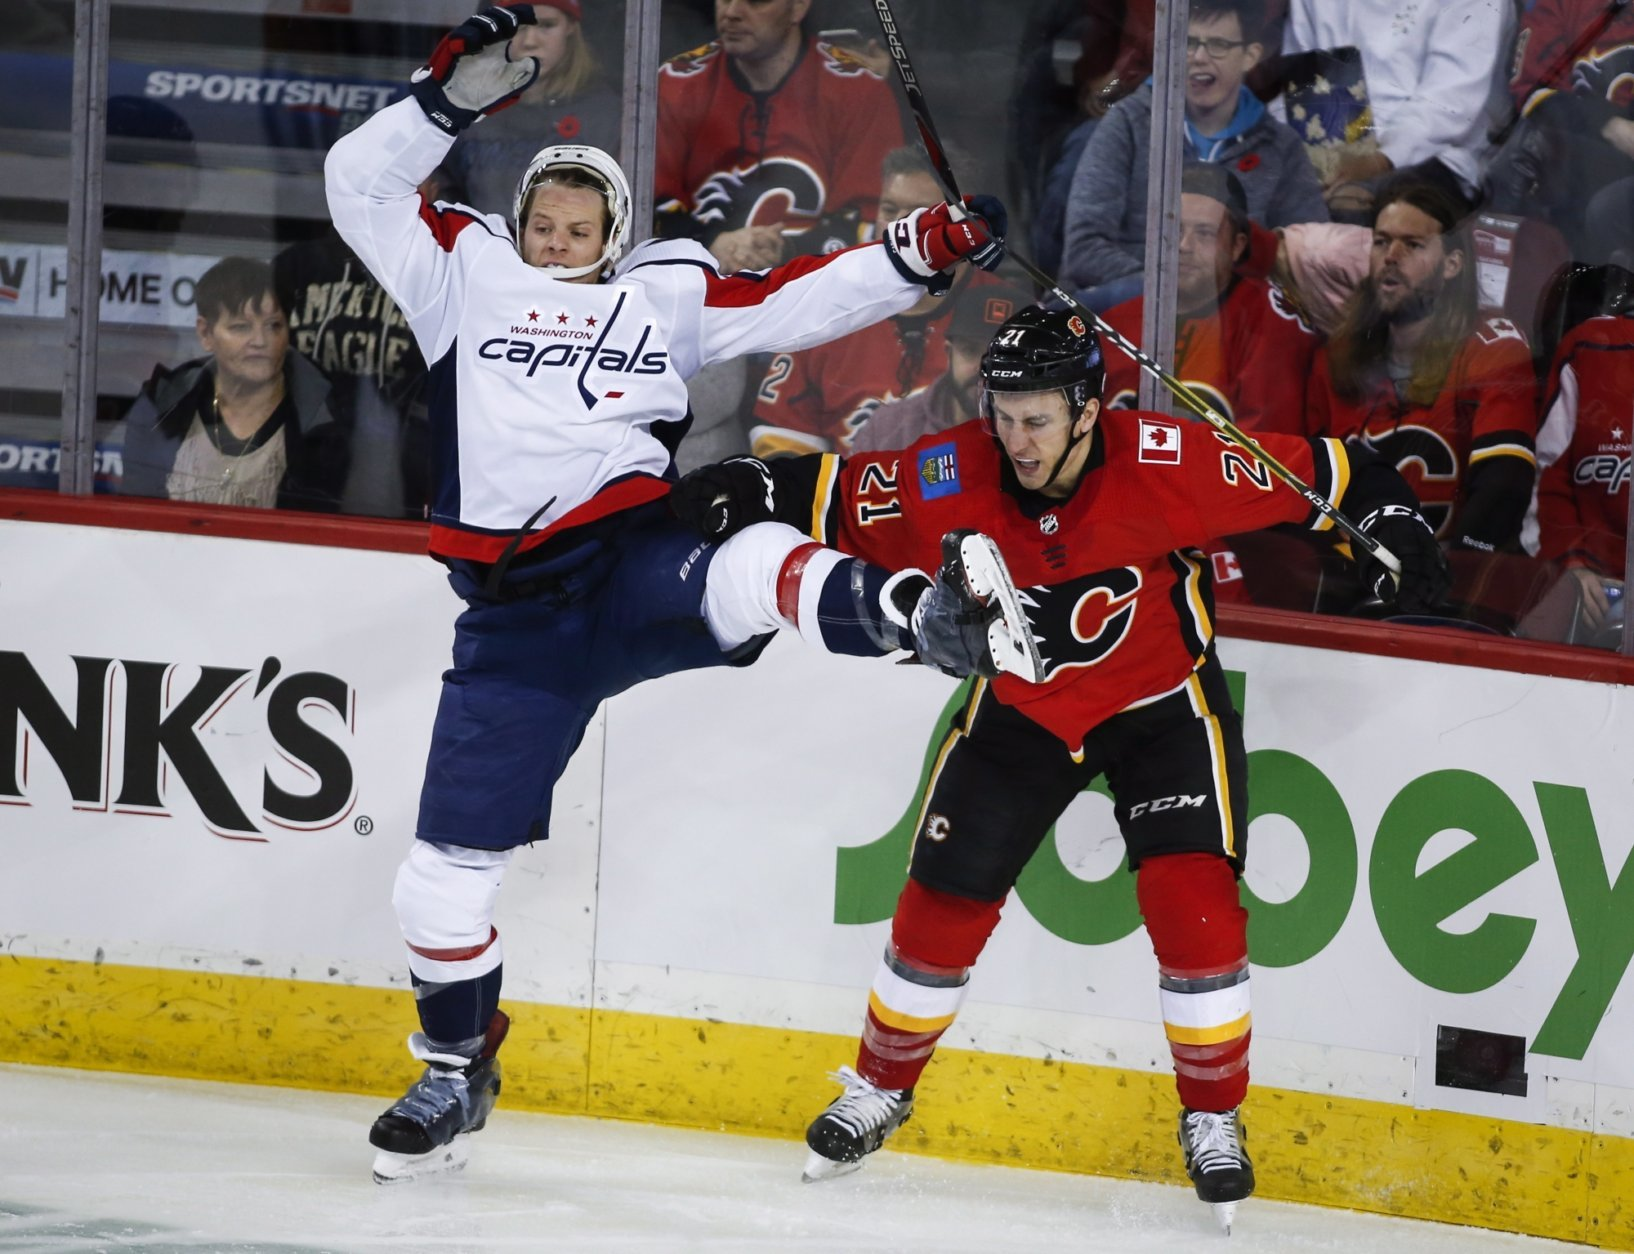 Washington Capitals' Nic Dowd, left, is checked Calgary Flames' Garnet Hathaway during second period NHL hockey action in Calgary, Alberta, Saturday, Oct. 27, 2018. (Jeff McIntosh/The Canadian Press via AP)